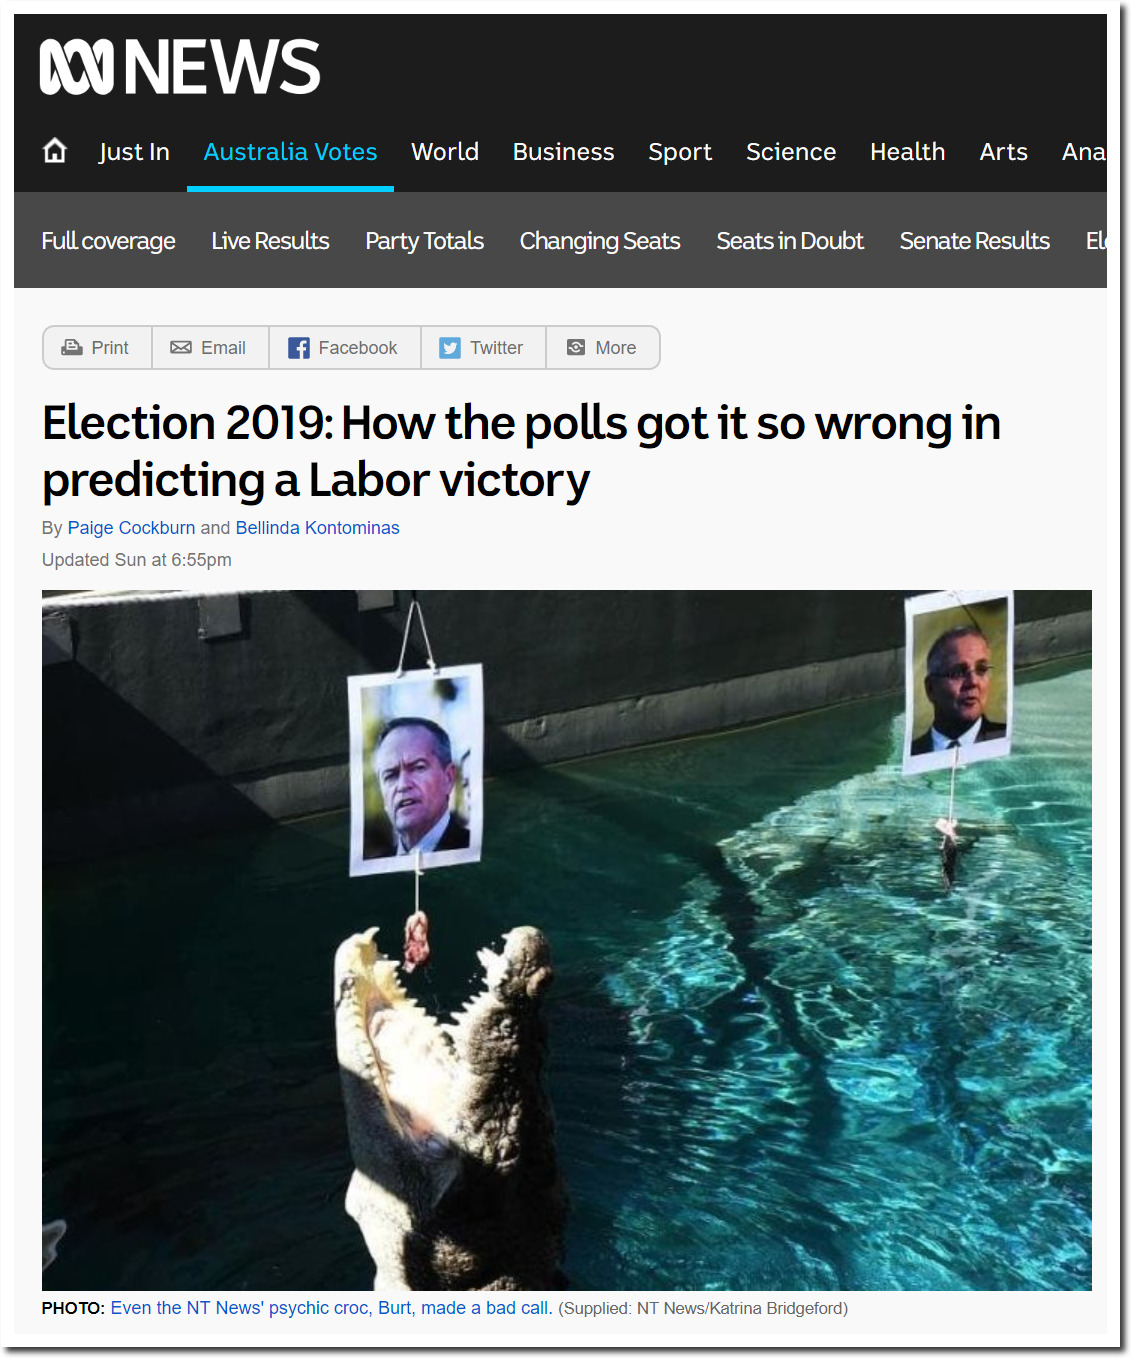 Polls Are Used To Manipulate People – Not Inform Them | The